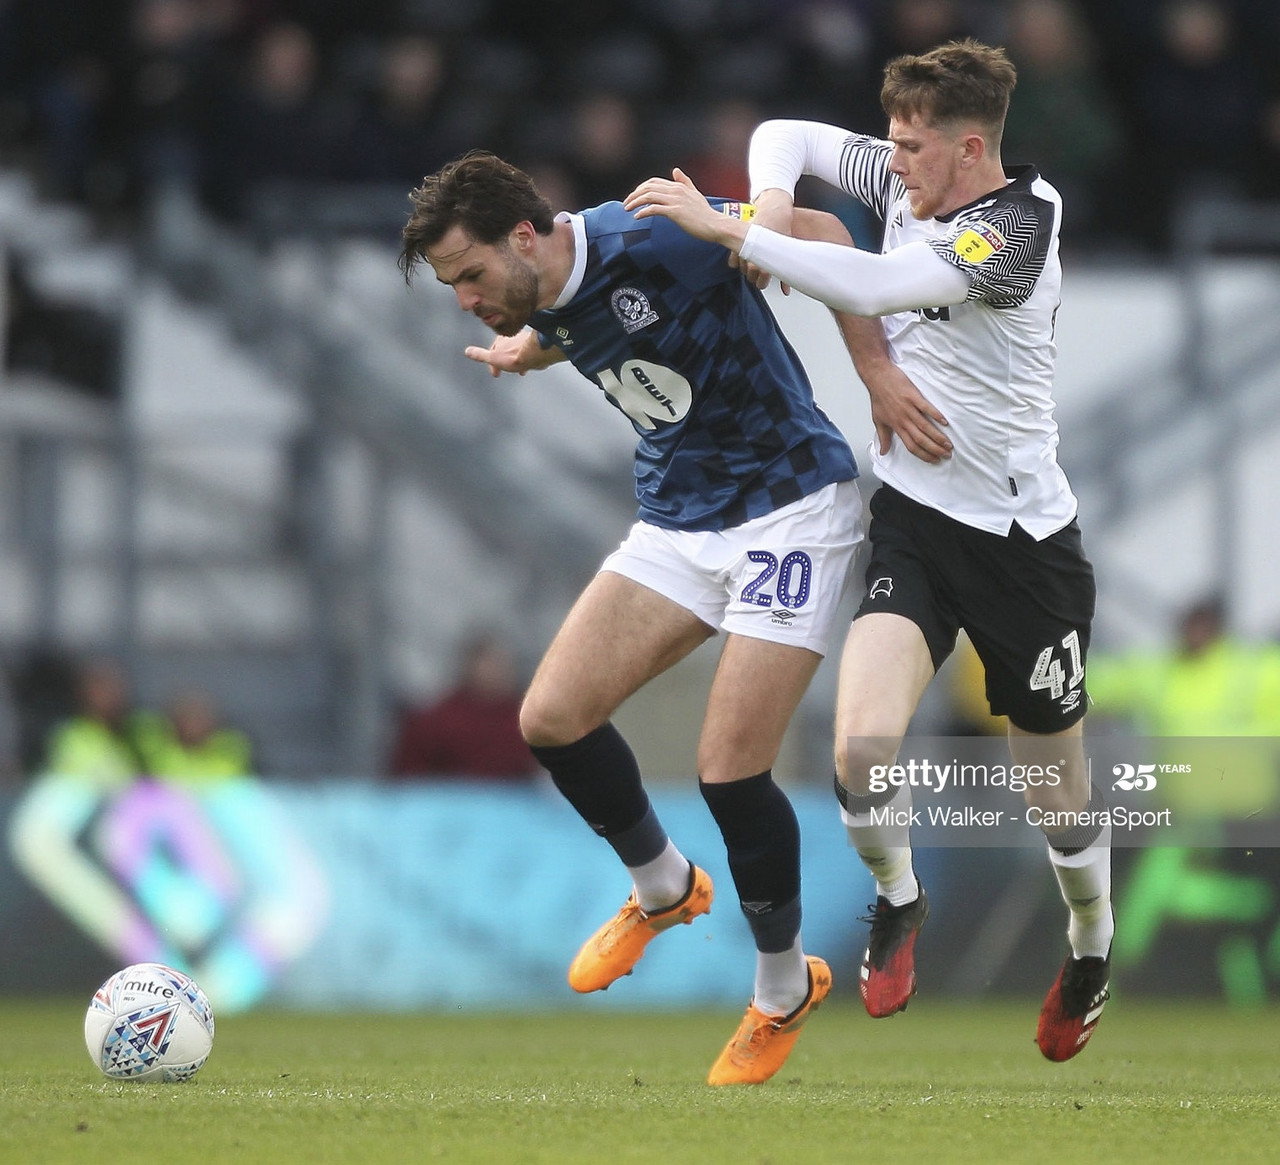 Derby County vs Blackburn Rovers Preview: How to watch, kick-off time, team news, predicted lineups and ones to watch